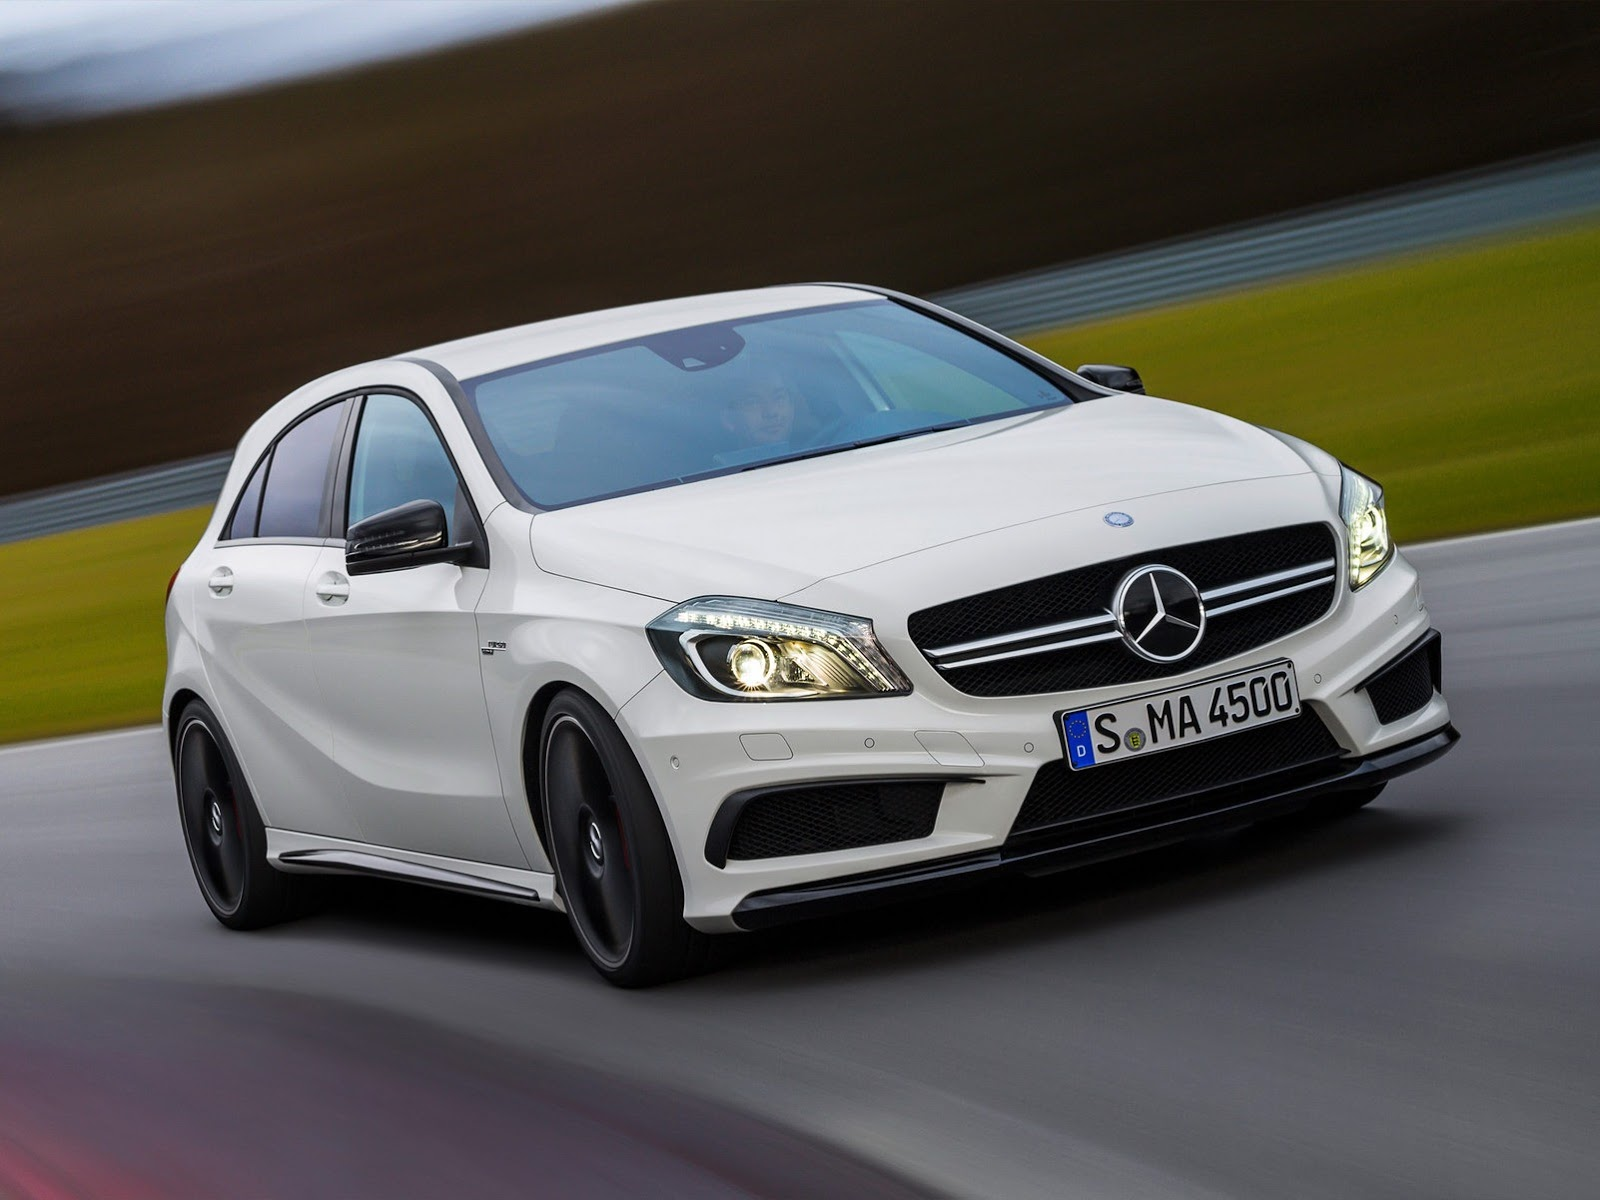 Mercedes a45 amg revealed 360 hp awd 7 speed autoevolution